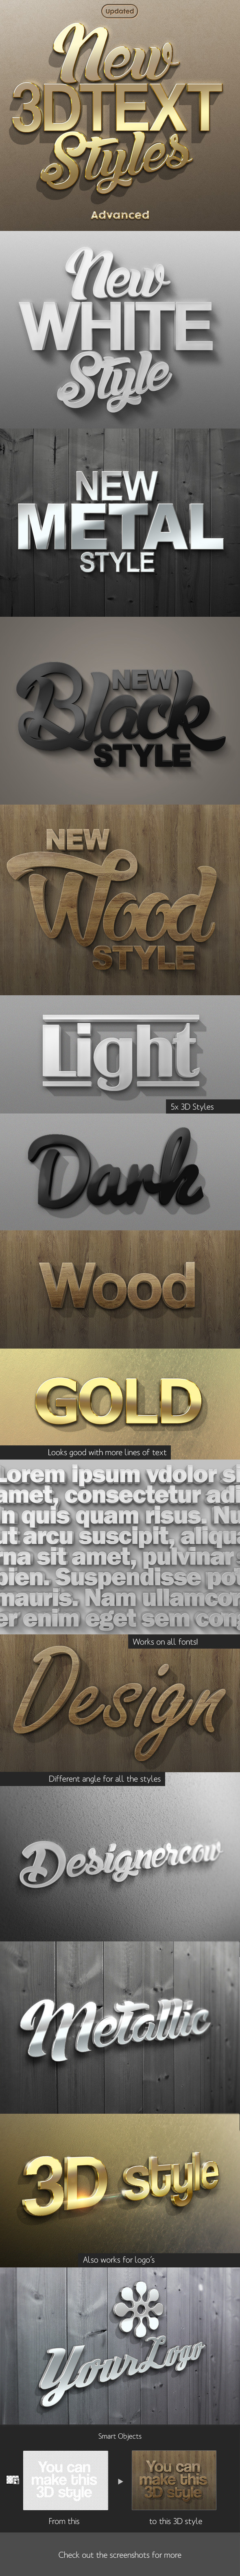 New 3D Text Styles Advanced - Styles Photoshop